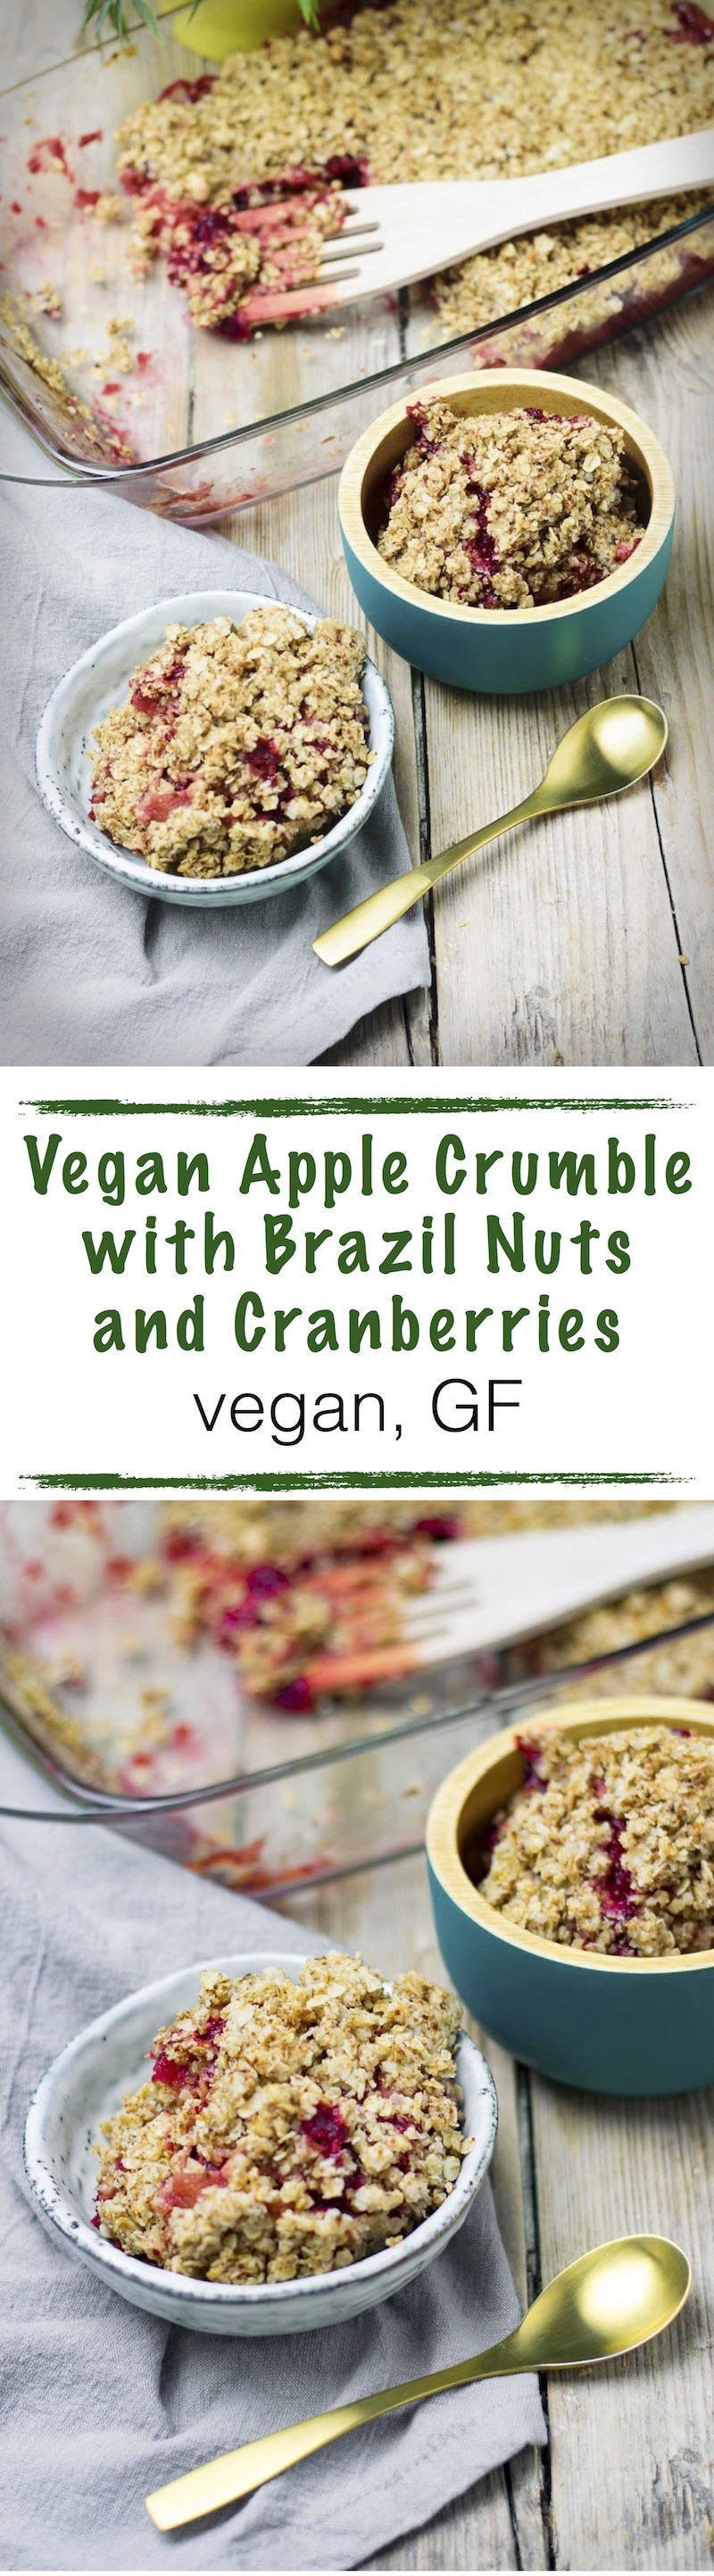 My Vegan Apple Crumble with Brazil Nuts and Cranberries is a flavorful and healthy recipe for breakfast – but also an awesome option for a dessert or even a snack during the day. There are so many vital nutrients in this stunner than you will feel a real power boost with this easy #vegan Apple Crumble right away.